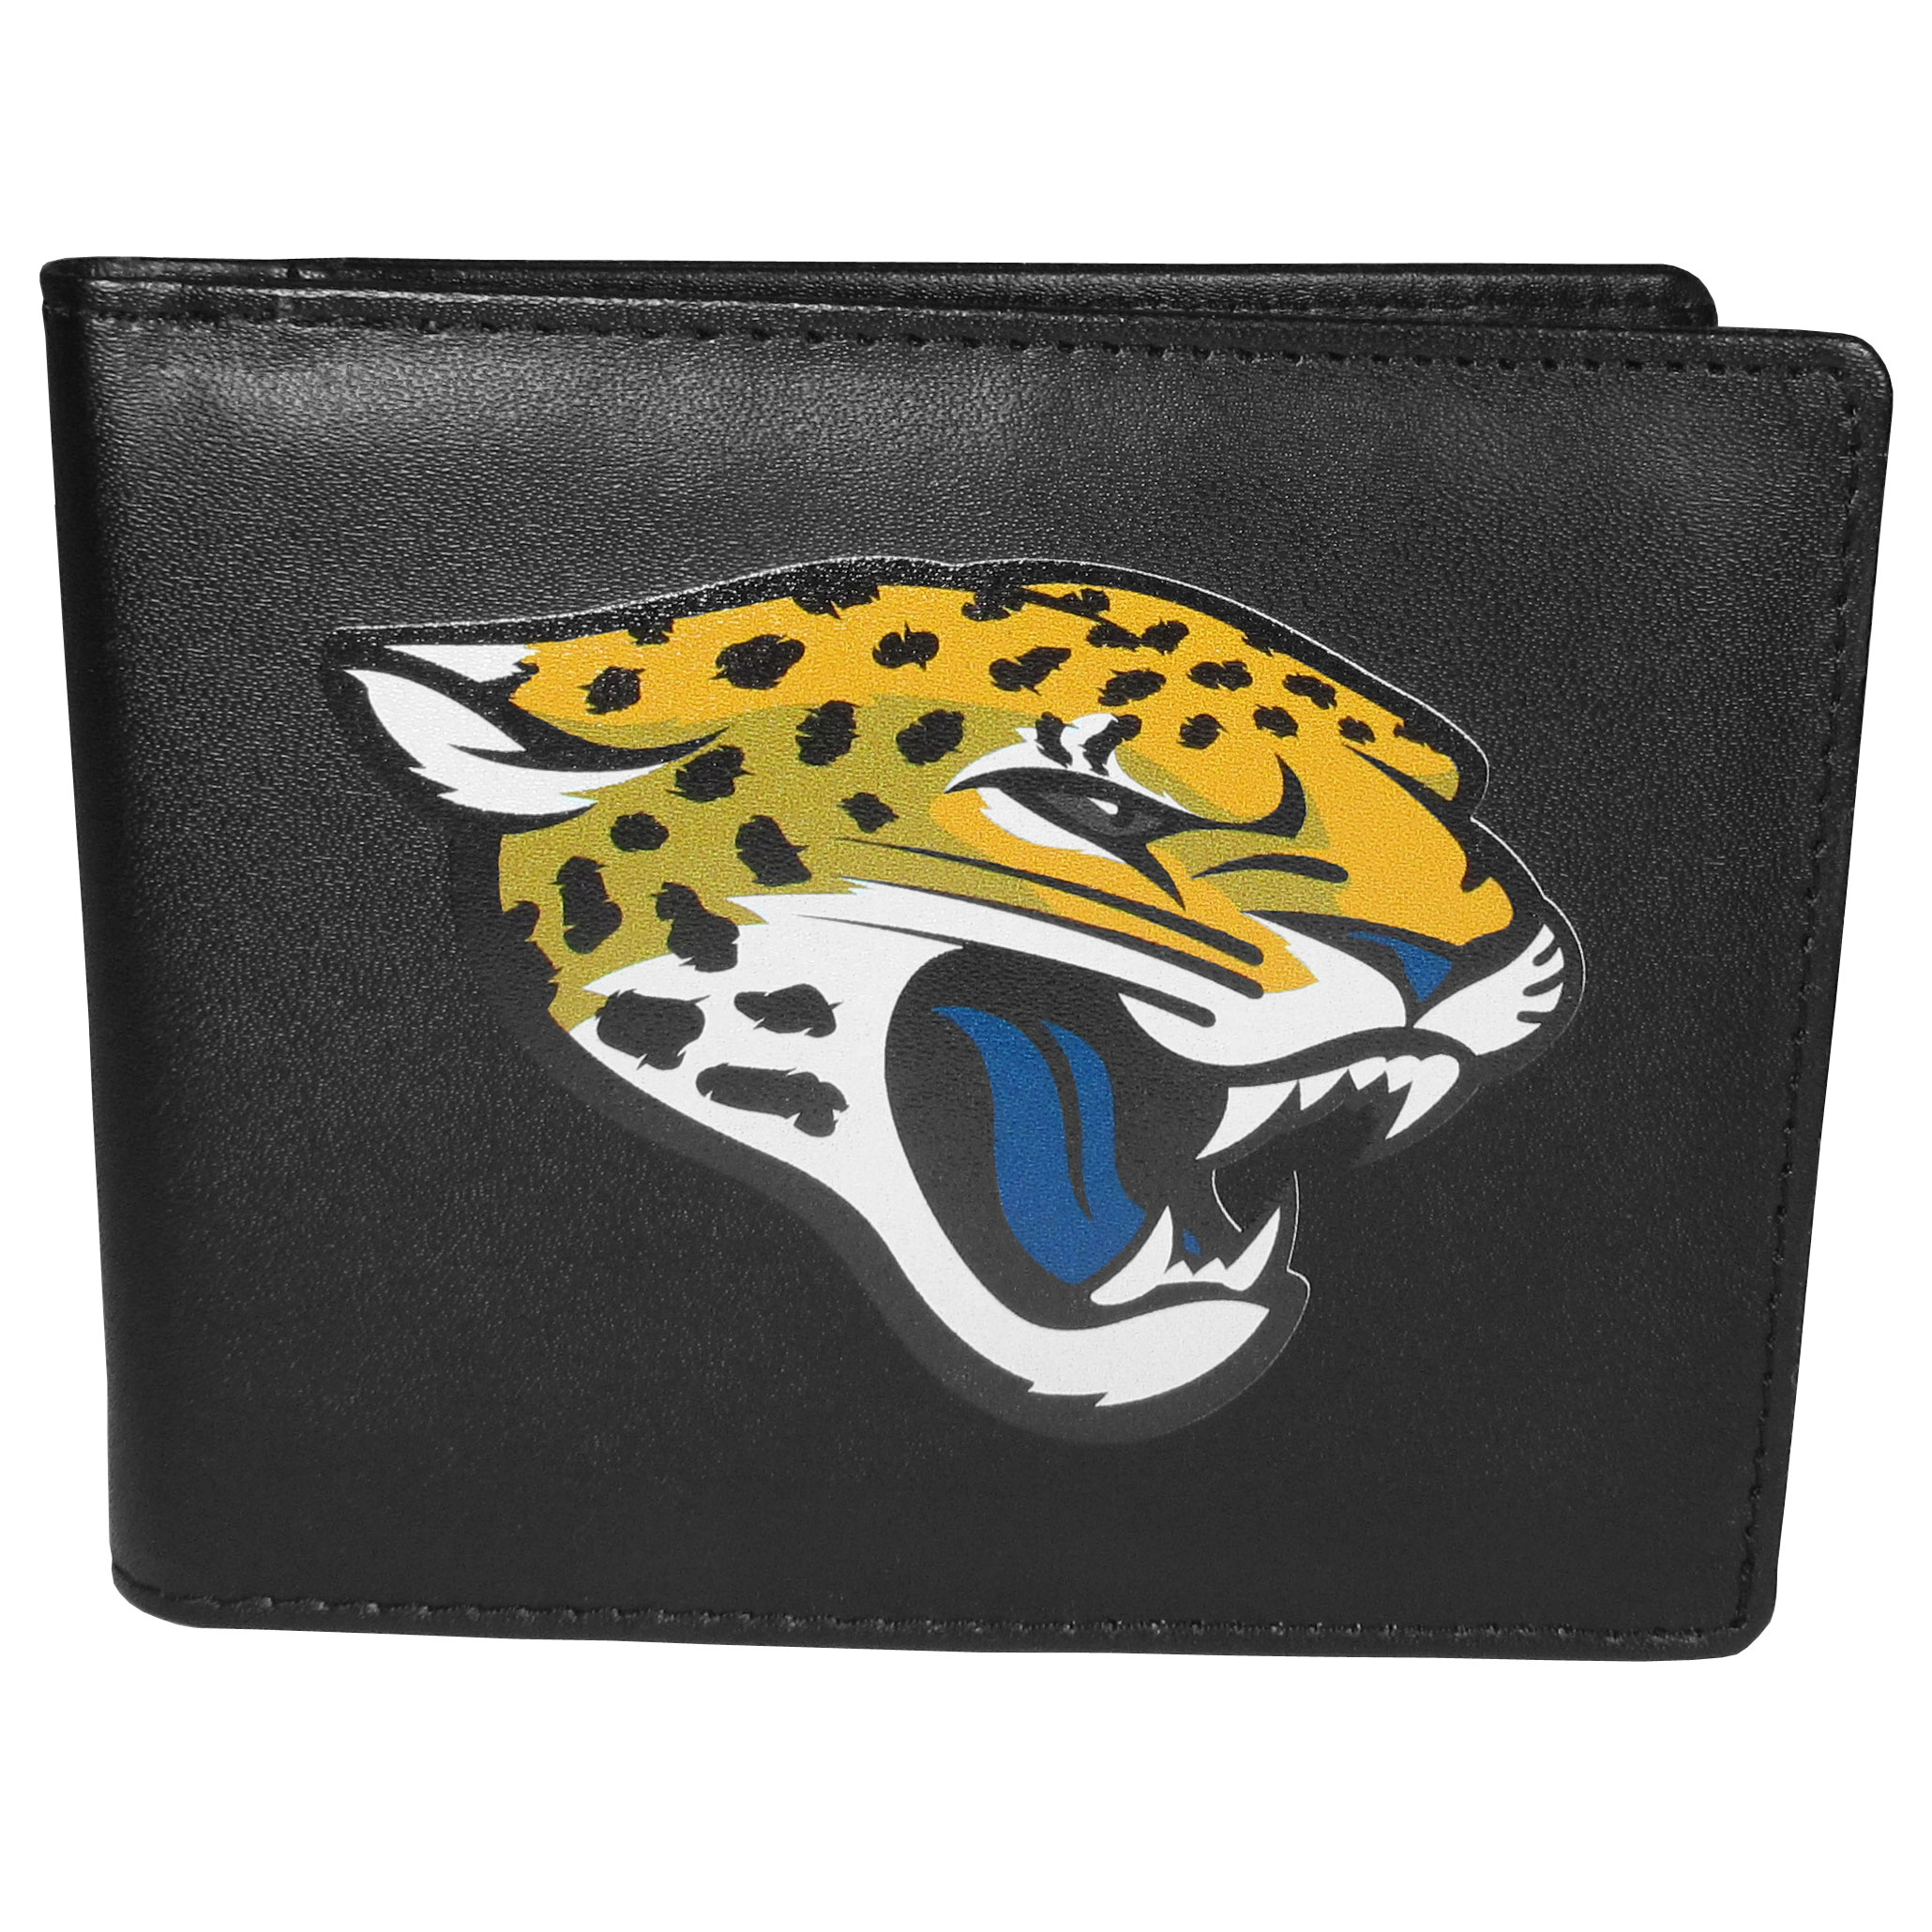 Jacksonville Jaguars Bi-fold Wallet Large Logo - Sports fans do not have to sacrifice style with this classic bi-fold wallet that sports the Jacksonville Jaguars extra large logo. This men's fashion accessory has a leather grain look and expert craftmanship for a quality wallet at a great price. The wallet features inner credit card slots, windowed ID slot and a large billfold pocket. The front of the wallet features a printed team logo.